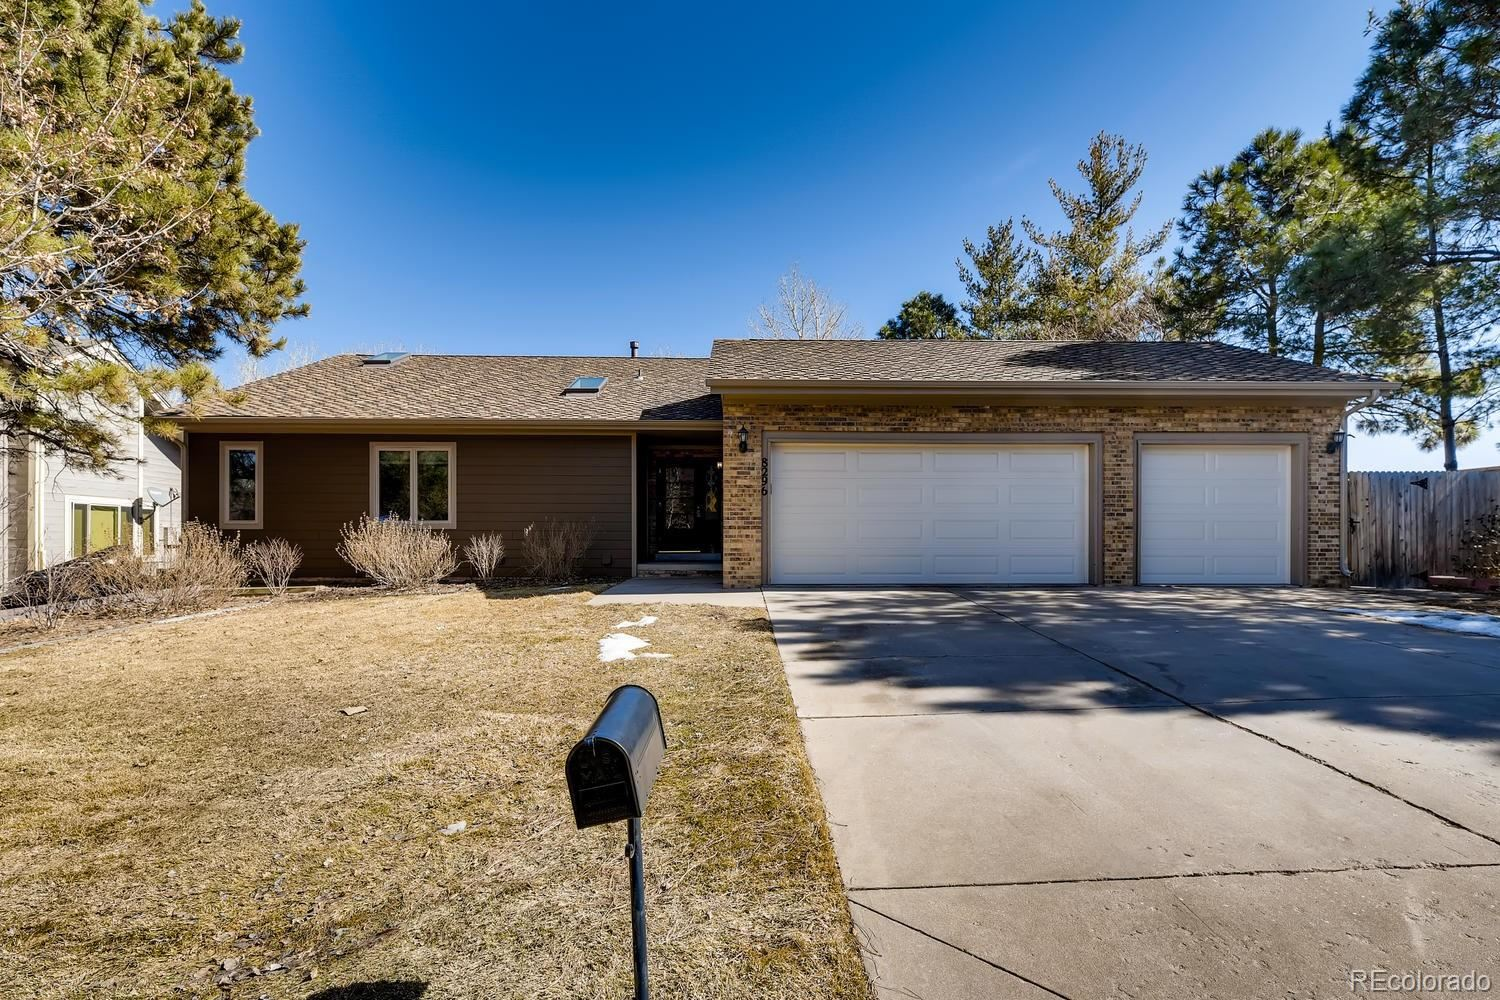 8296 S Locust Way, Centennial, CO 80112 - #: 3336385